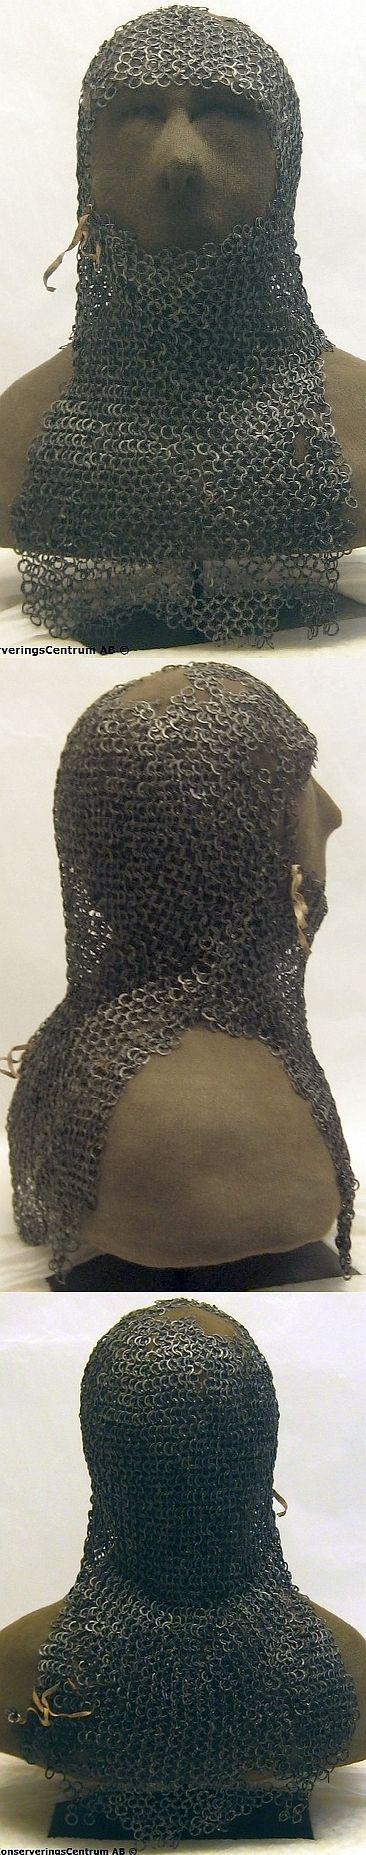 European riveted mail coif, found intact in the tower room of Tofta Church, a medieval Lutheran church on the Swedish island of Gotland Sweden. The hood is unique in that it is exceptionally well preserved, and because it has original leather straps. The hood has been carbon 14 dated to the 1200s, conservation was commissioned in 2007 to preserve, assemble and analyze the hood, the work was completed in Dec 2008 and the hood was put on exhibit in Tofta church in Jan 2009, restored view.